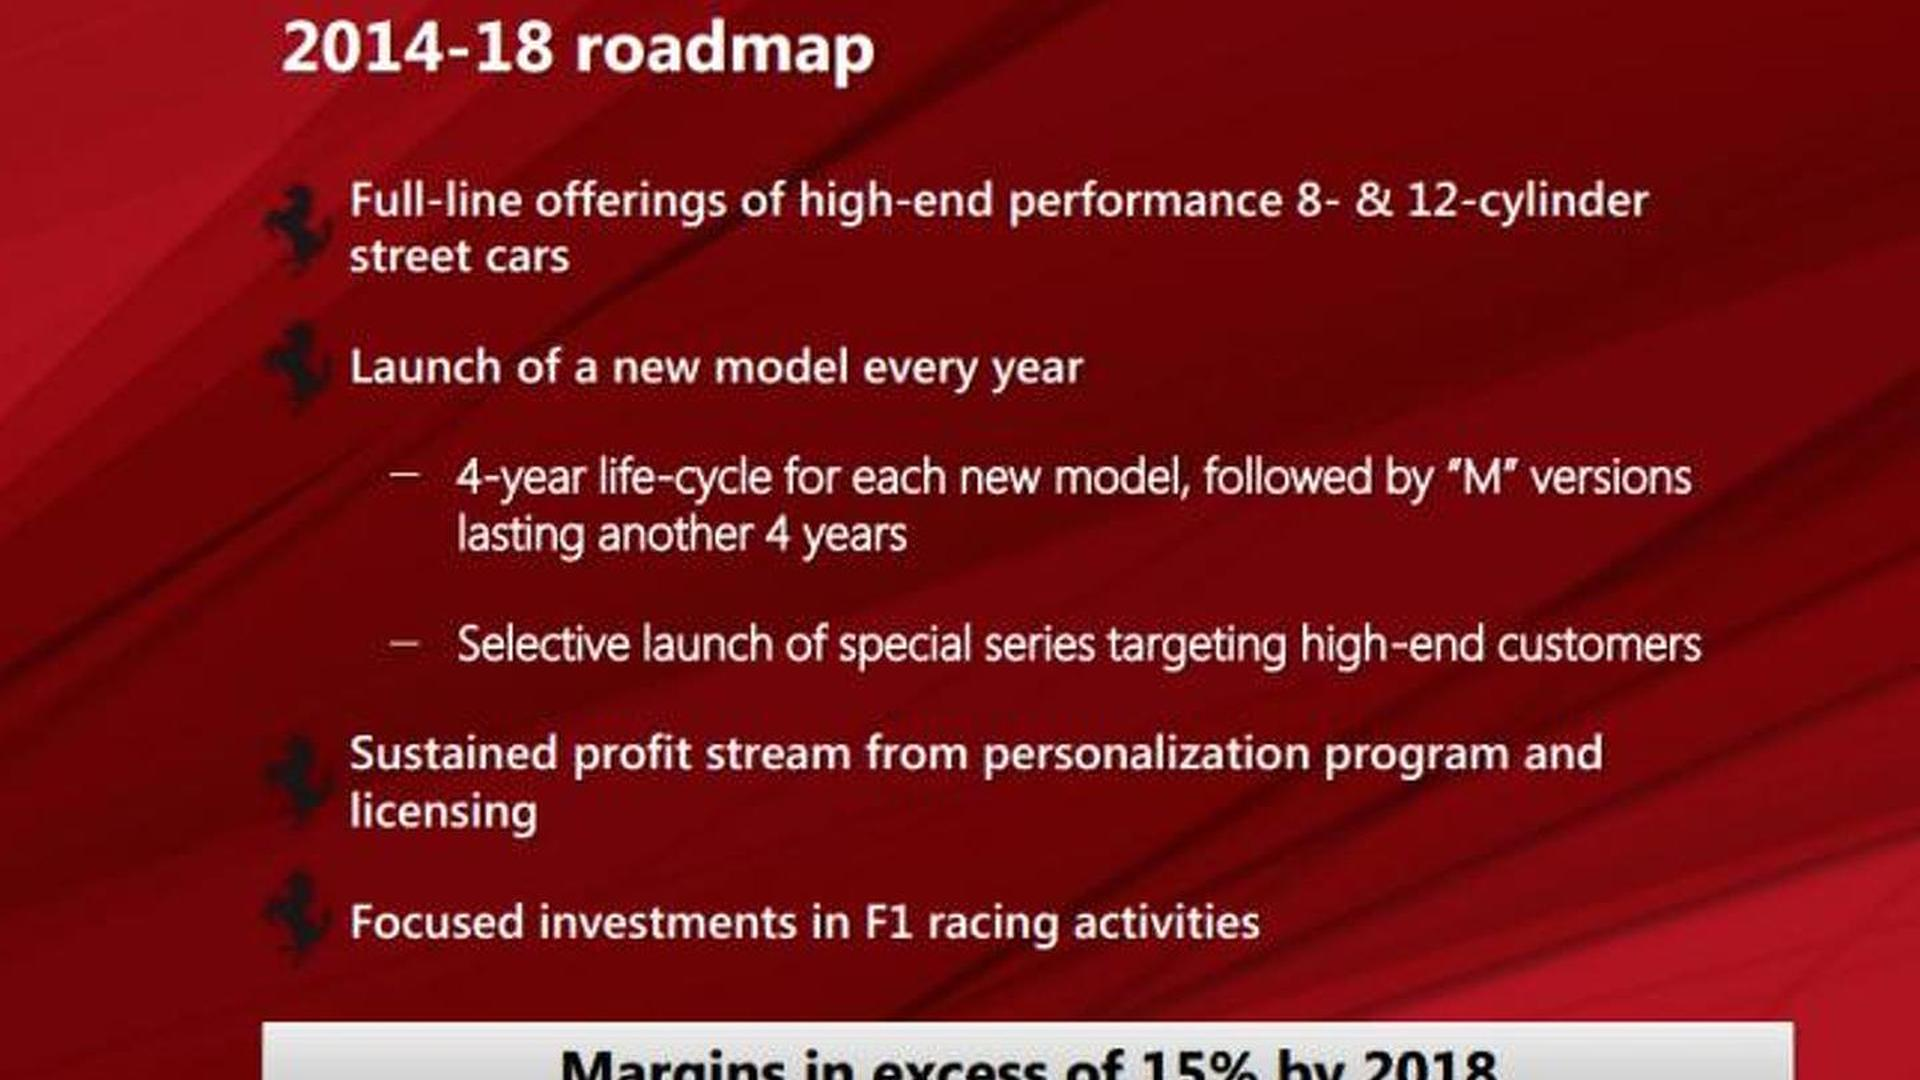 Ferrari confirms plans to launch a new model every year